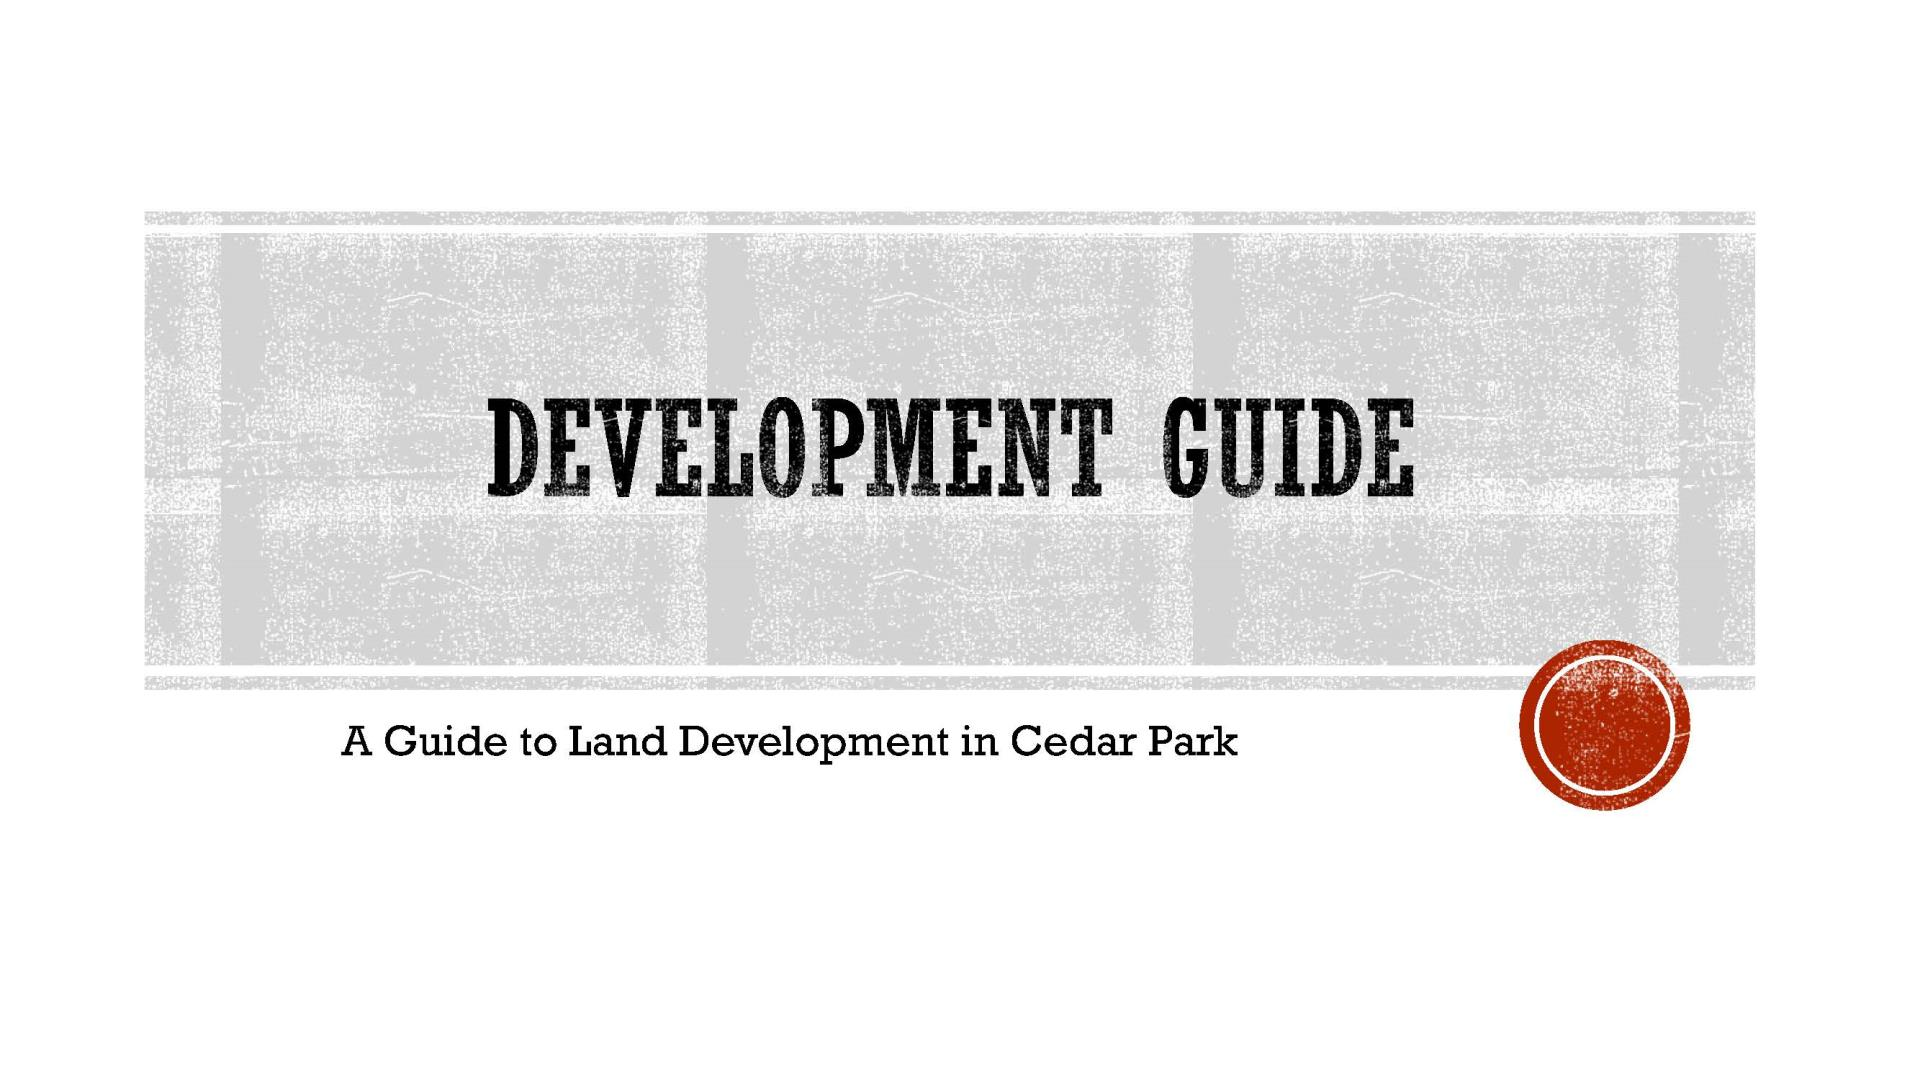 Development Guide PDF